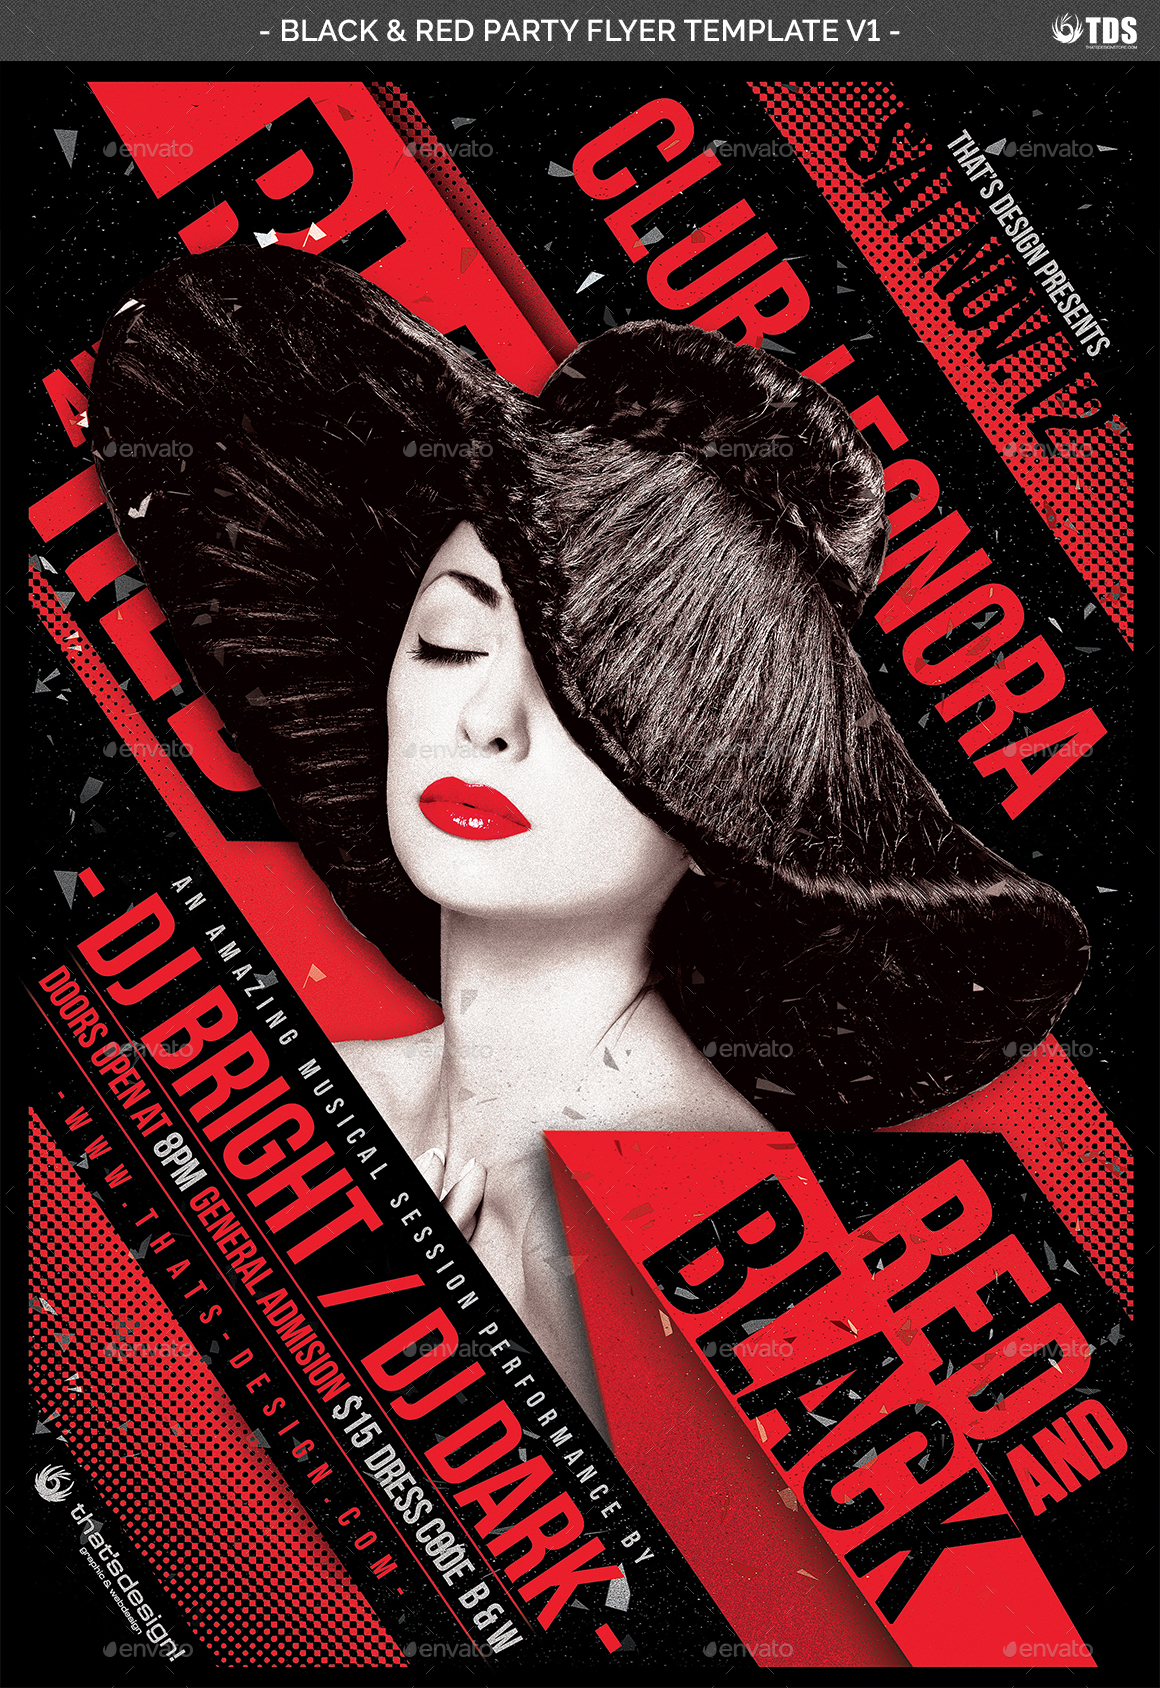 black and red party flyer template v1 by lou606